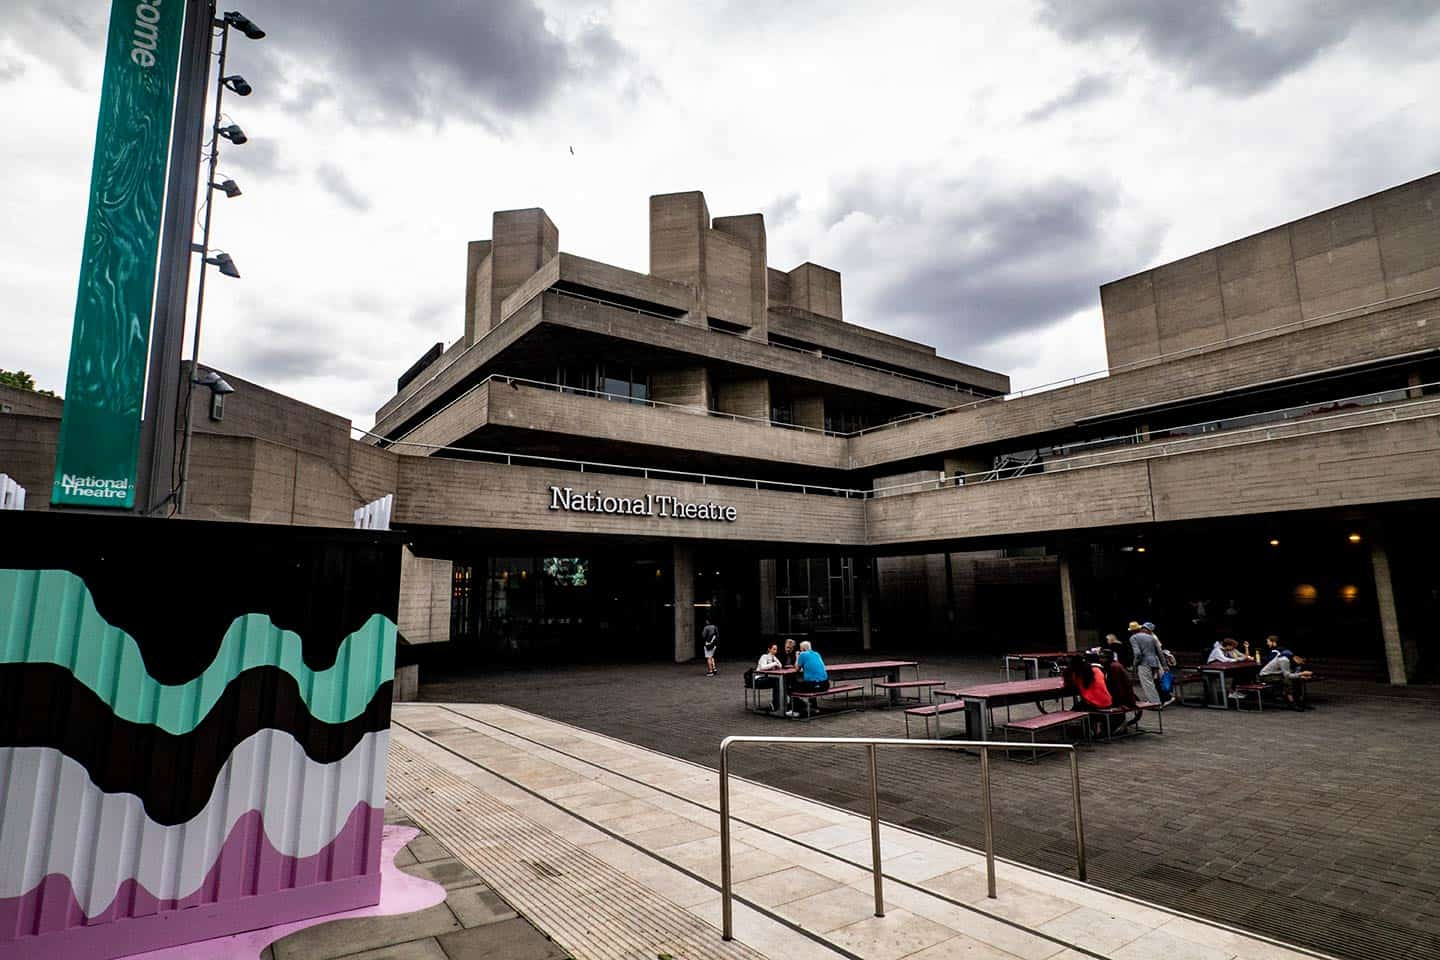 Image of the National Theatre, Southbank, London